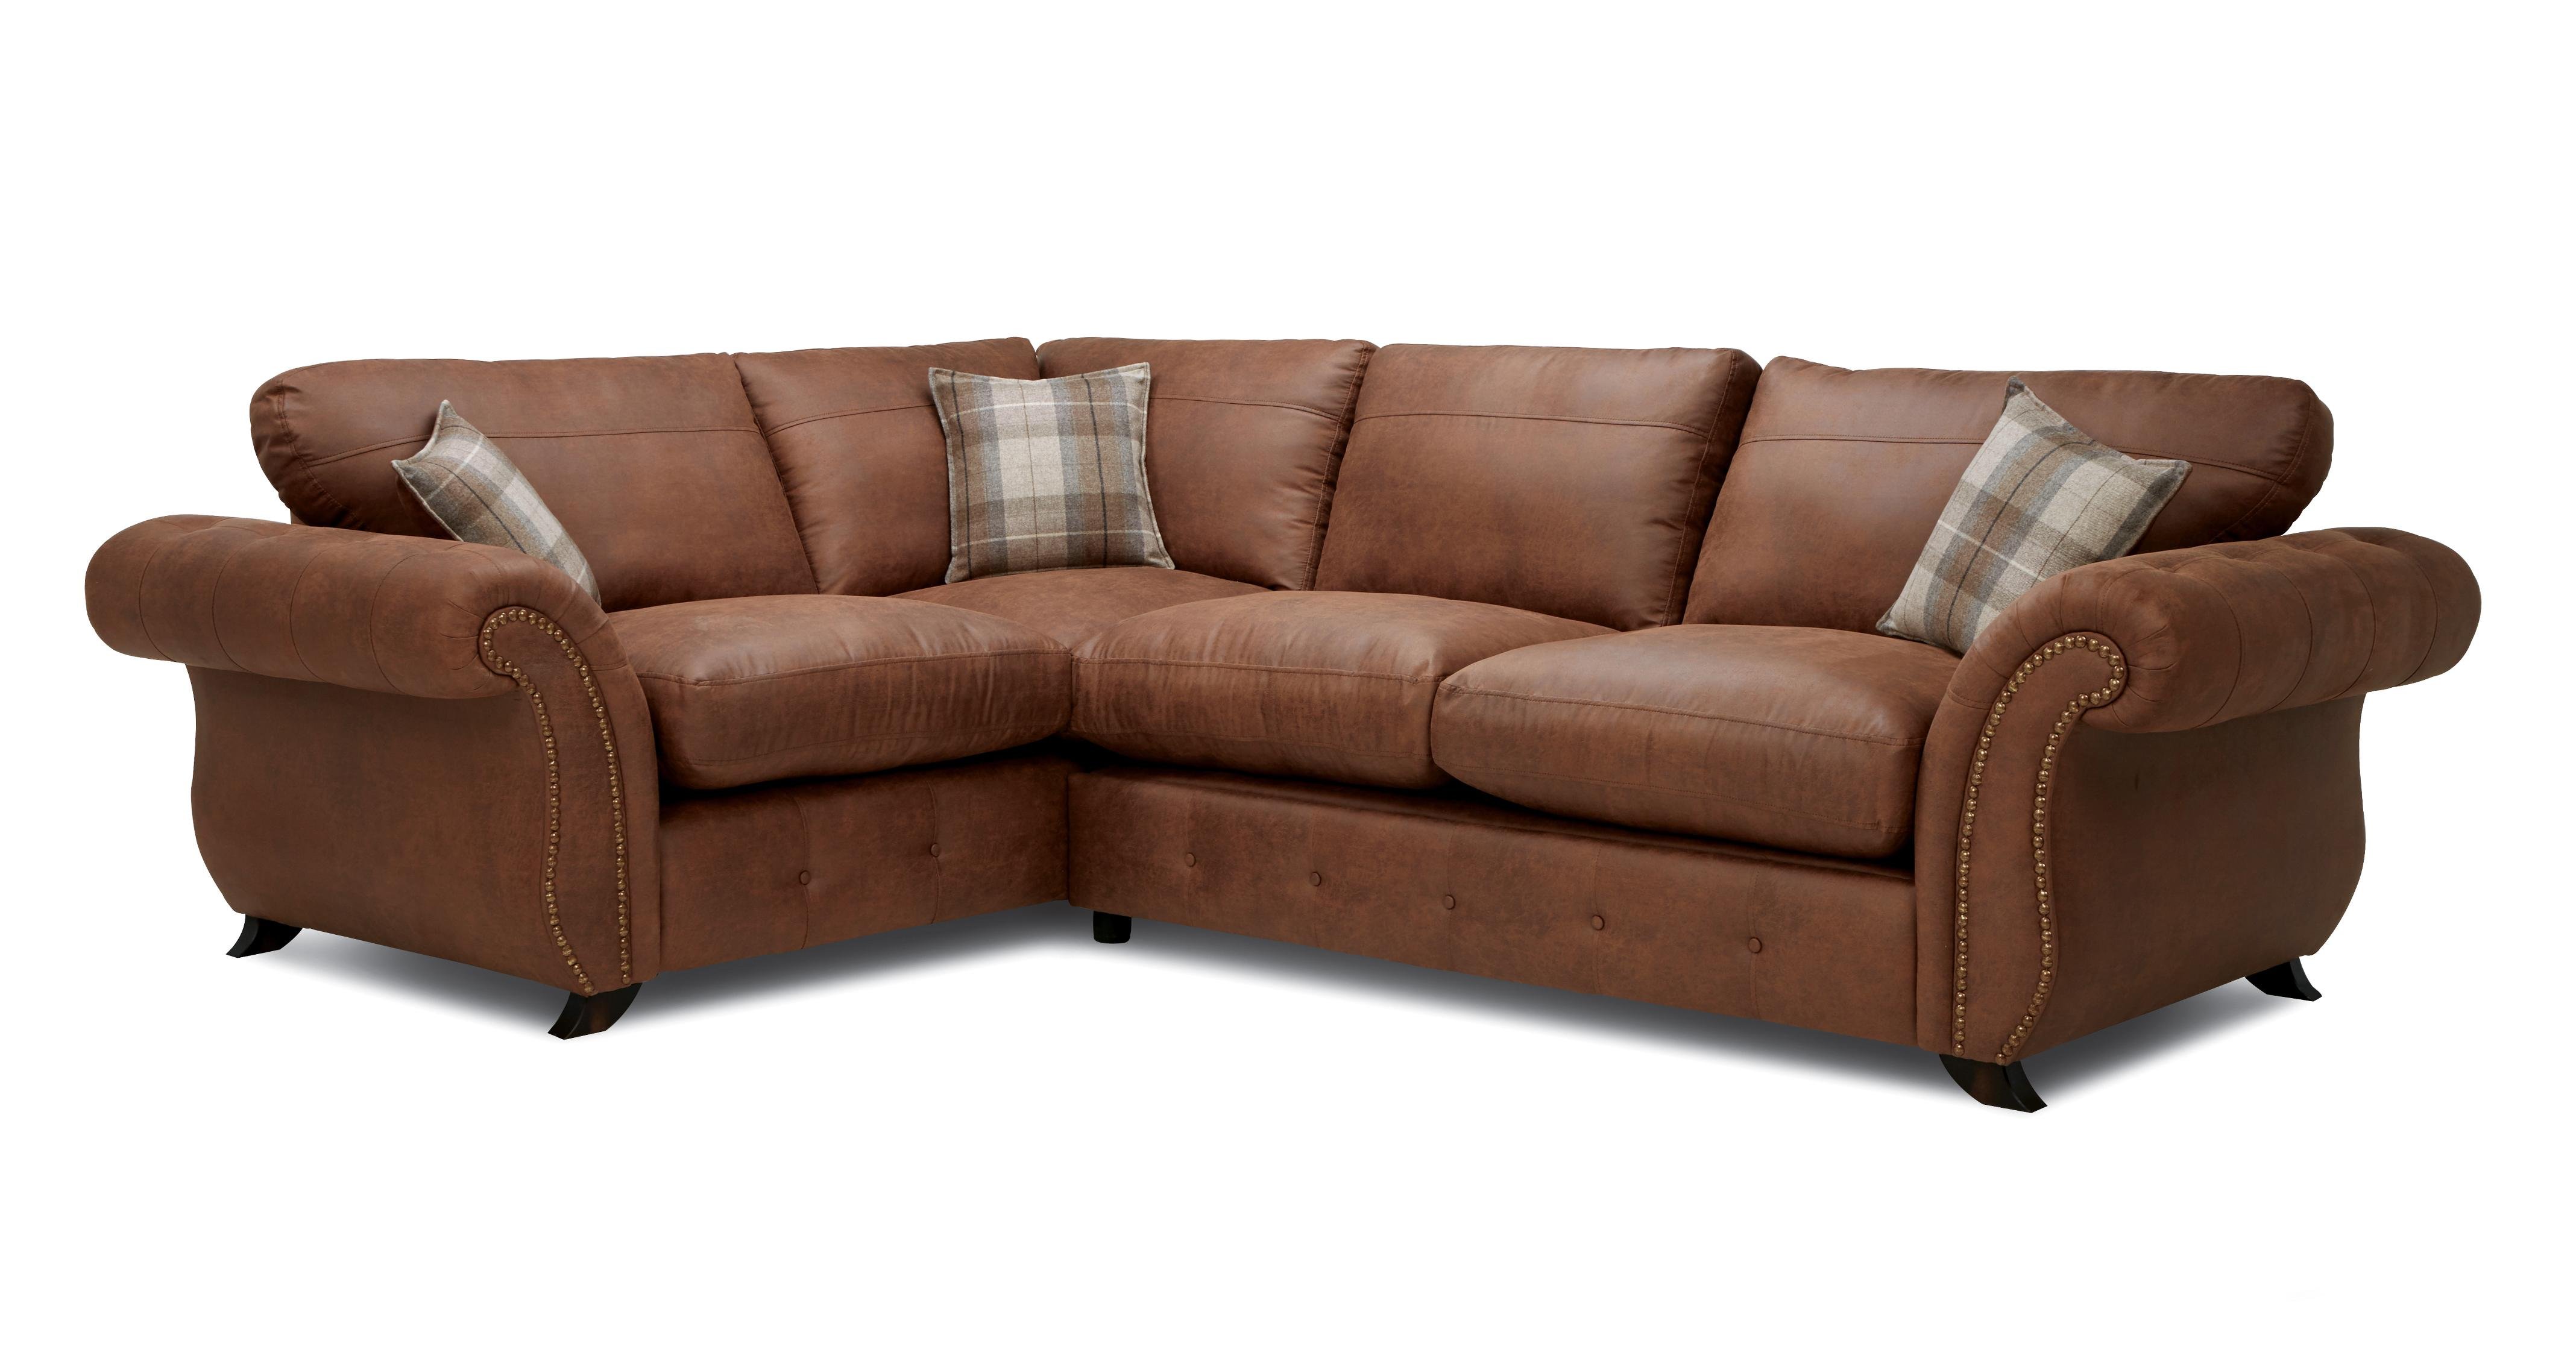 corner sofa dfs martinez t35 modern sectional bedford pillow back 3 seater oakland formal right hand facing